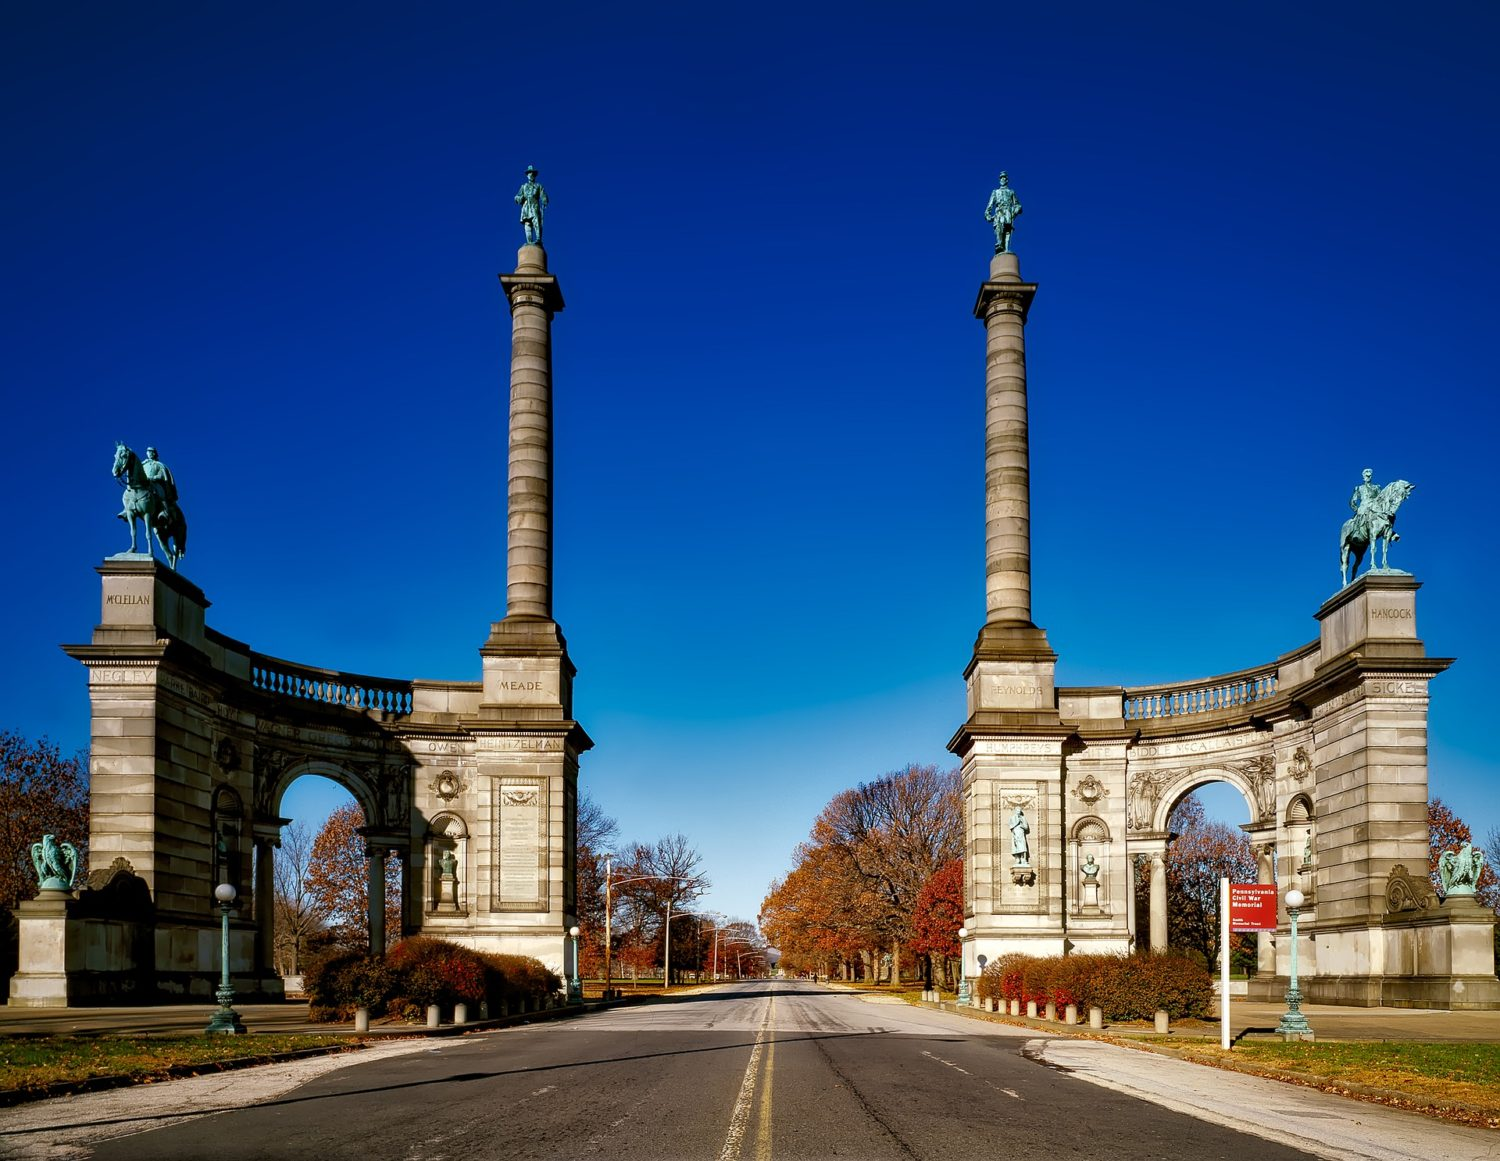 Civil War Soldiers' and Sailors' Monument, Benjamin Franklin Parkway, Philadelphia